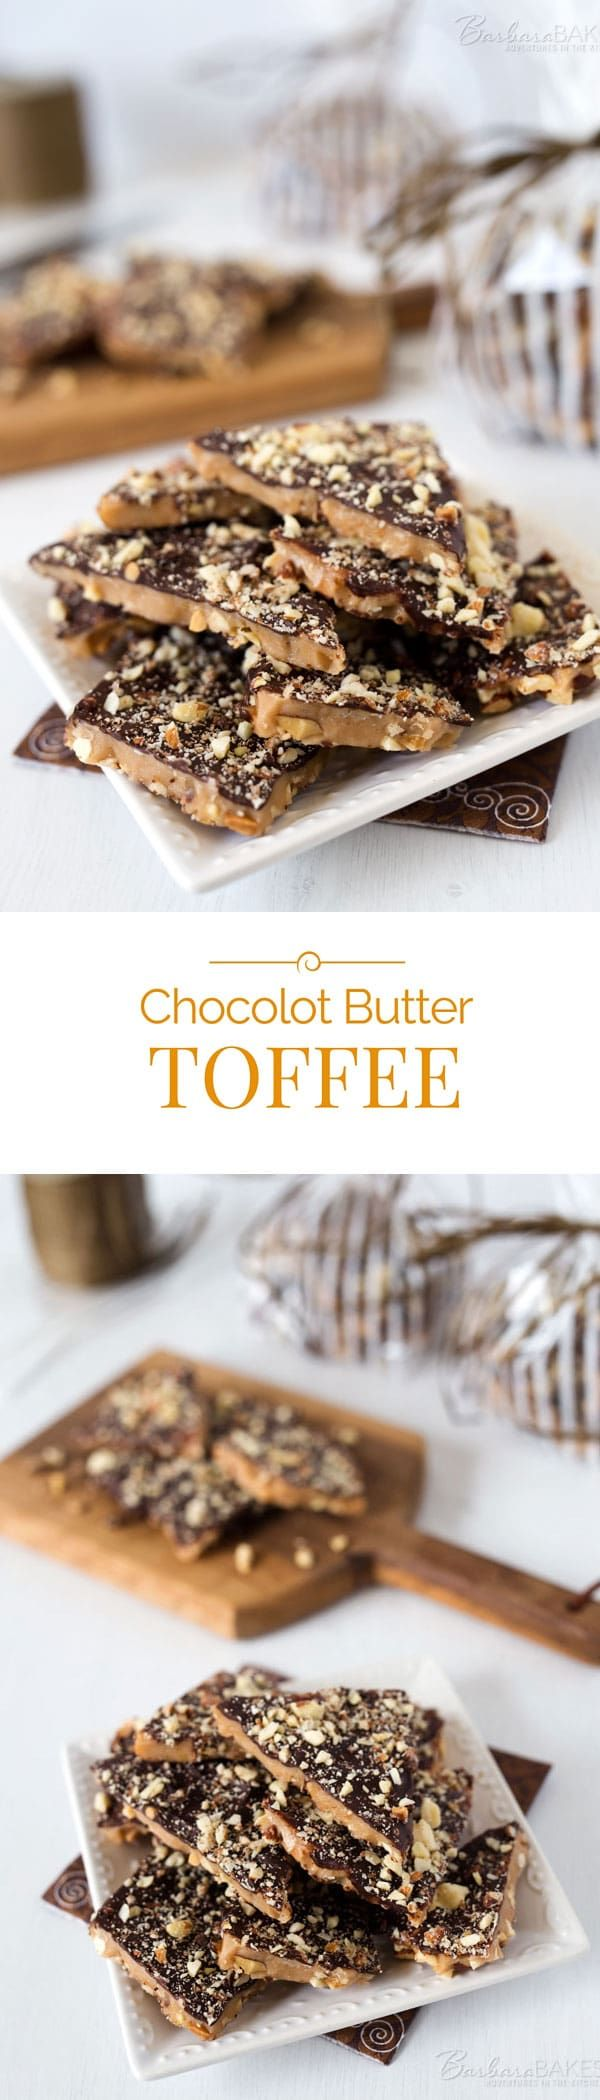 Chocolate Butter Toffee: Crisp, rich butter toffee loaded with crunchy almonds, topped with creamy milk chocolate and more chopped almonds. Butter toffee recipe from Chocolot.   Barbara Bakes